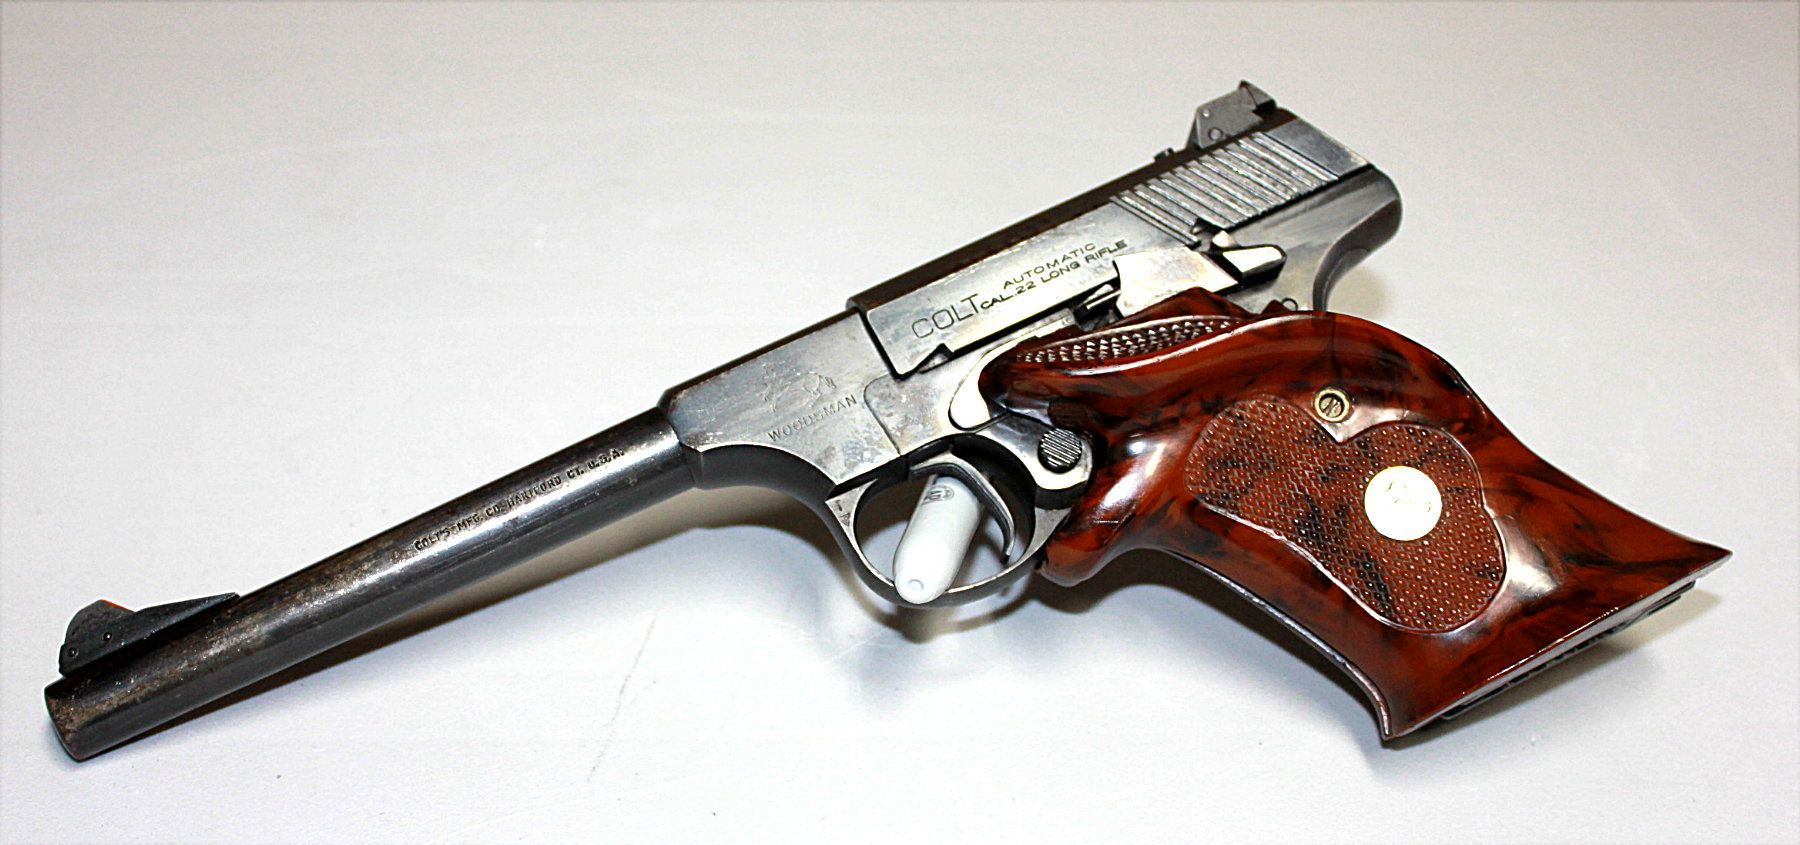 COLT WOODSMAN 22 LR SEMI-AUTO PISTOL - 1950 MODEL